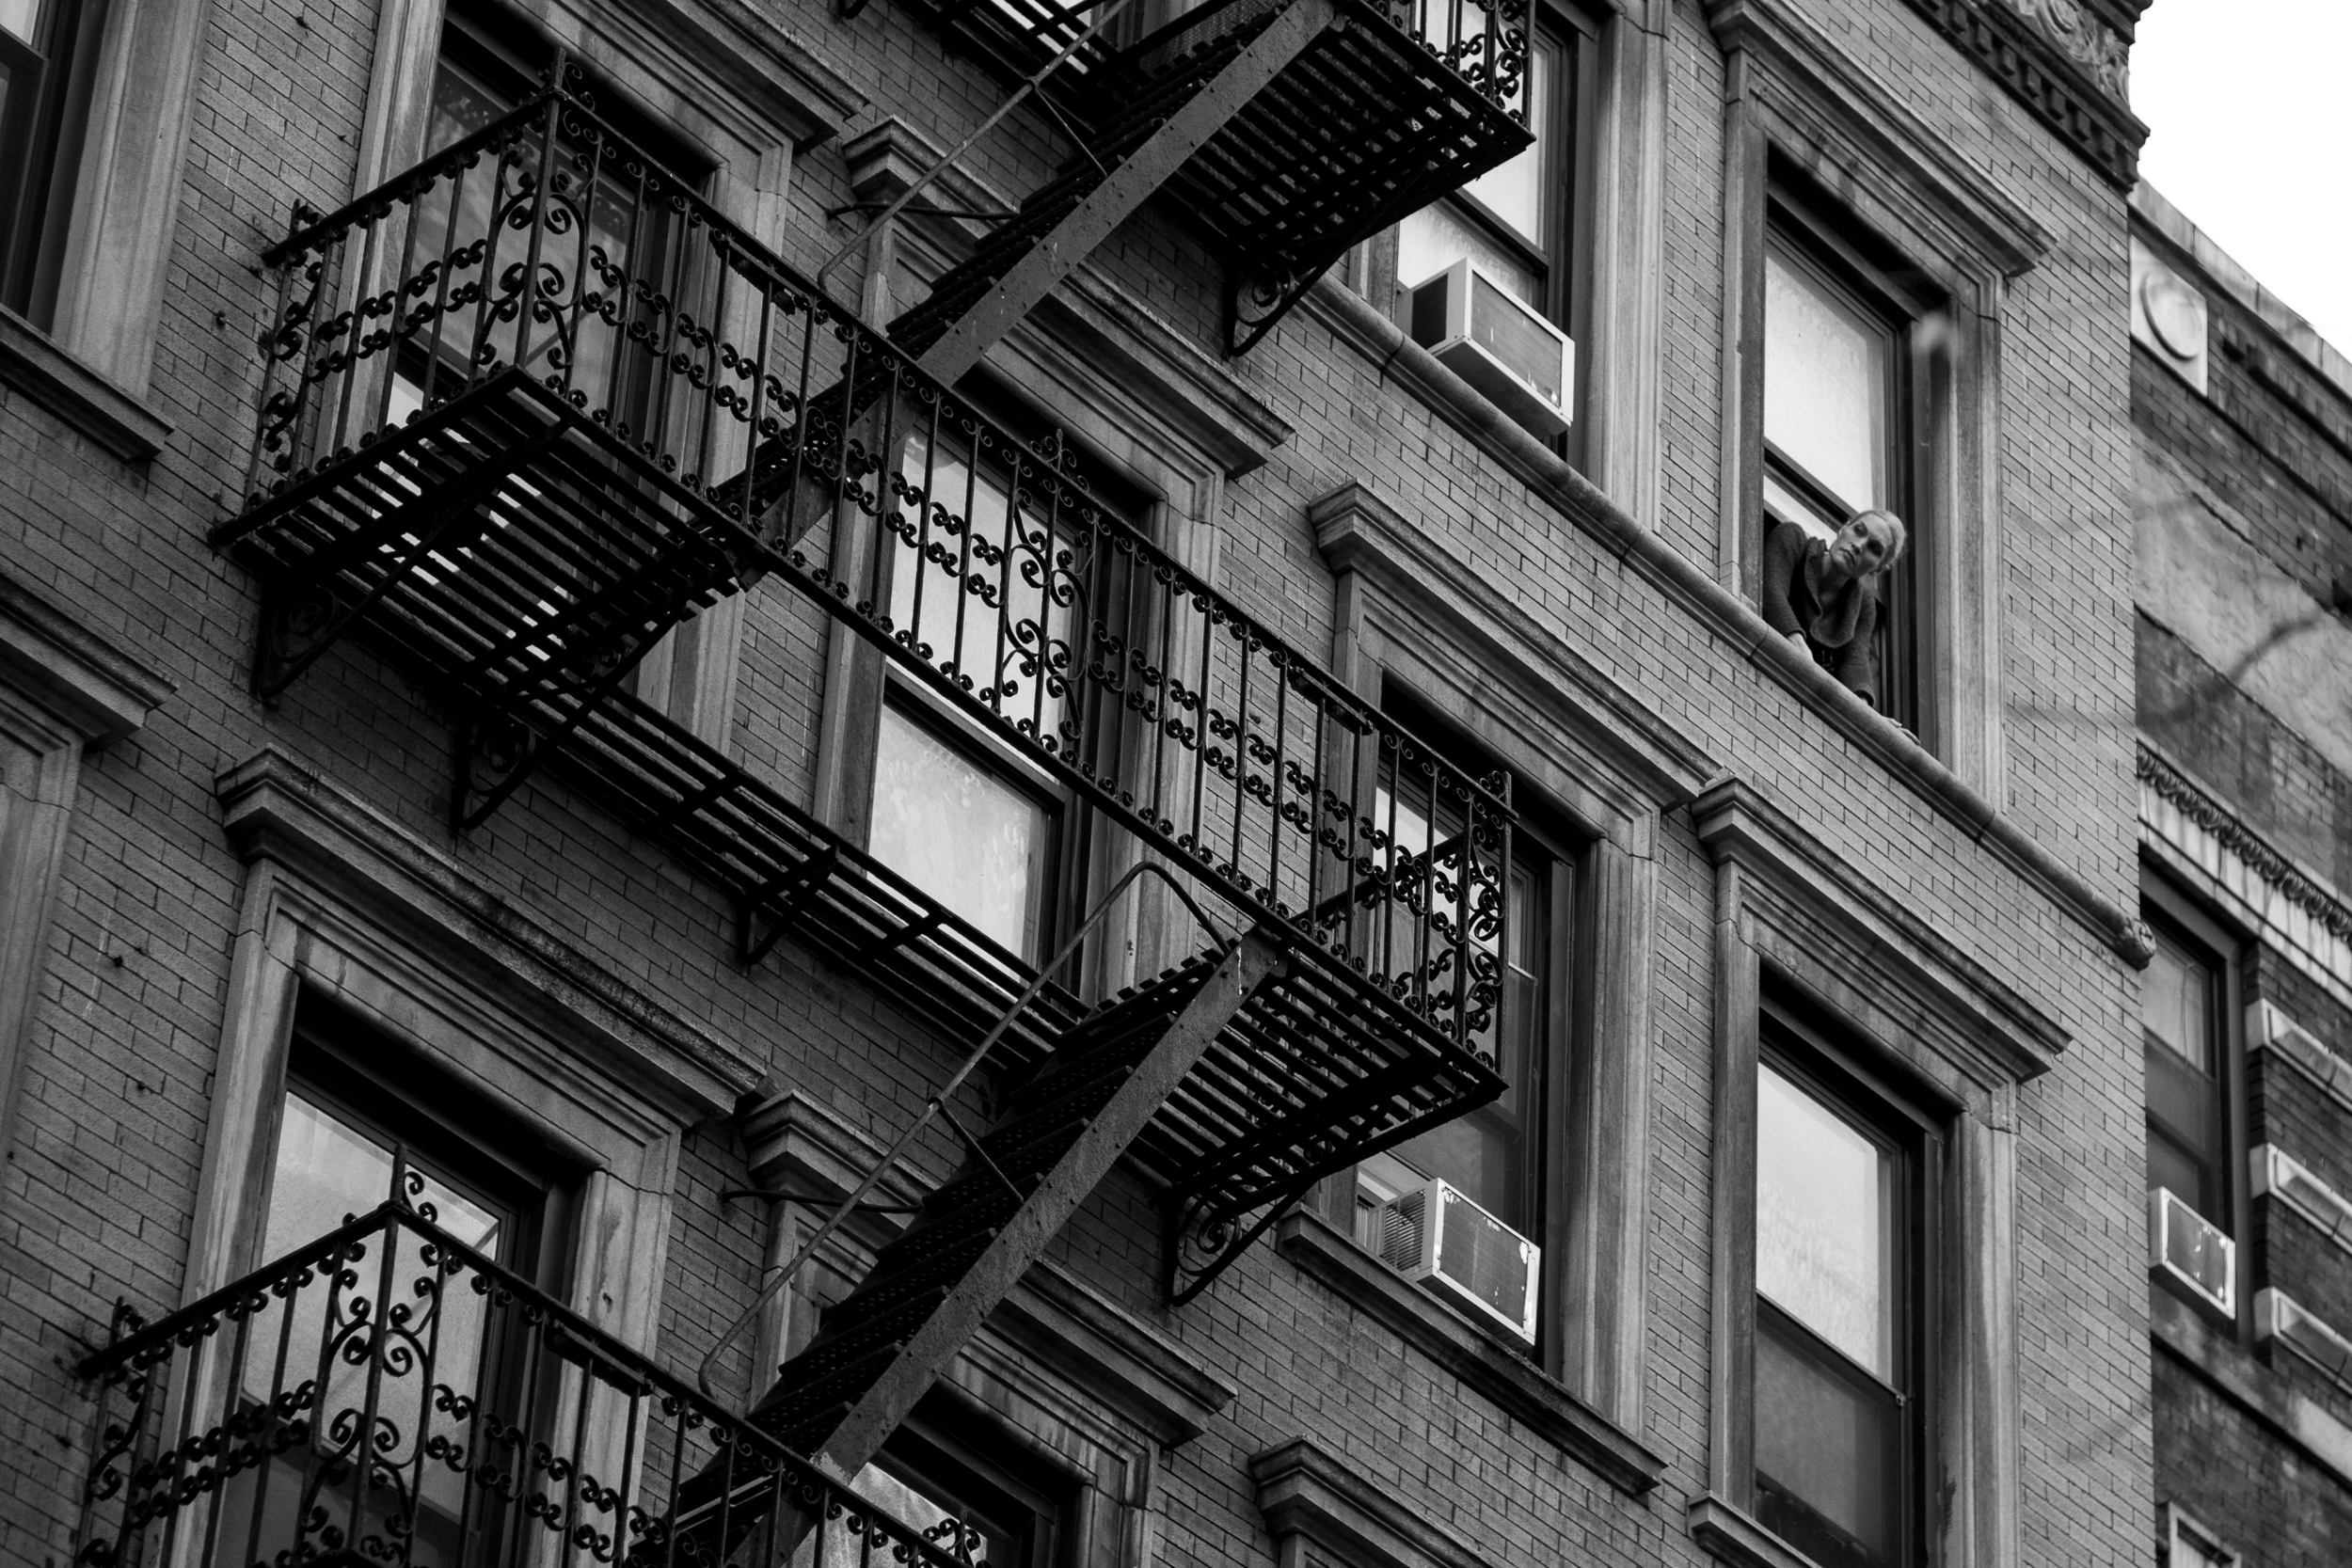 I spy. A woman looks out from her window on the busy New York streets below.Leica M10 with 90mm Summicron f/2.